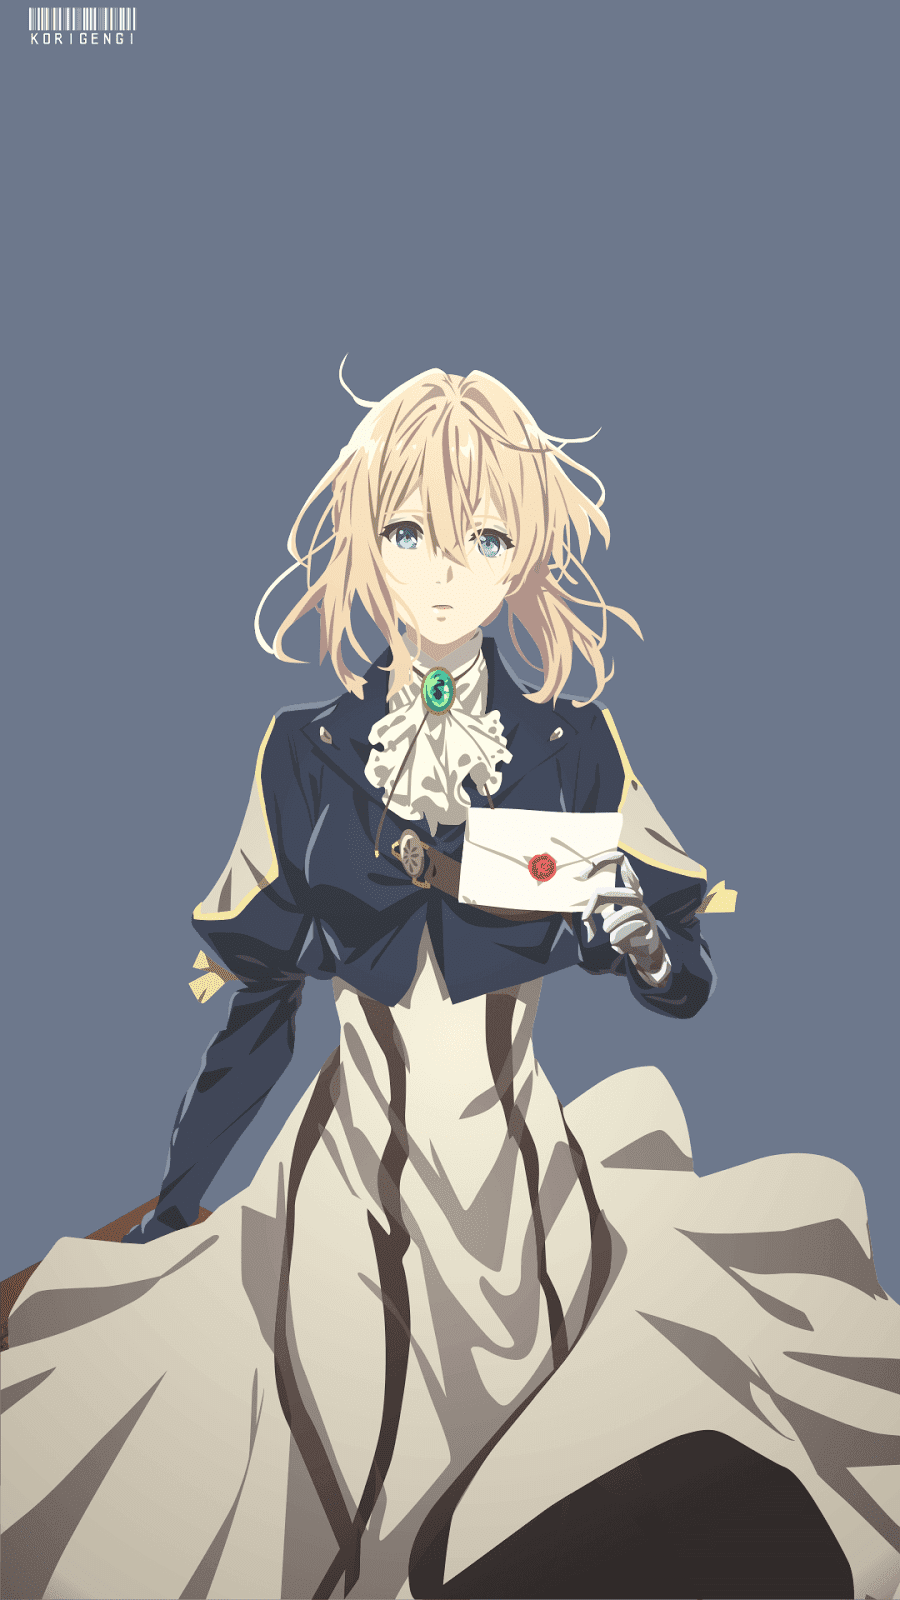 Violet Evergarden Hd Android Wallpapers - Wallpaper Cave